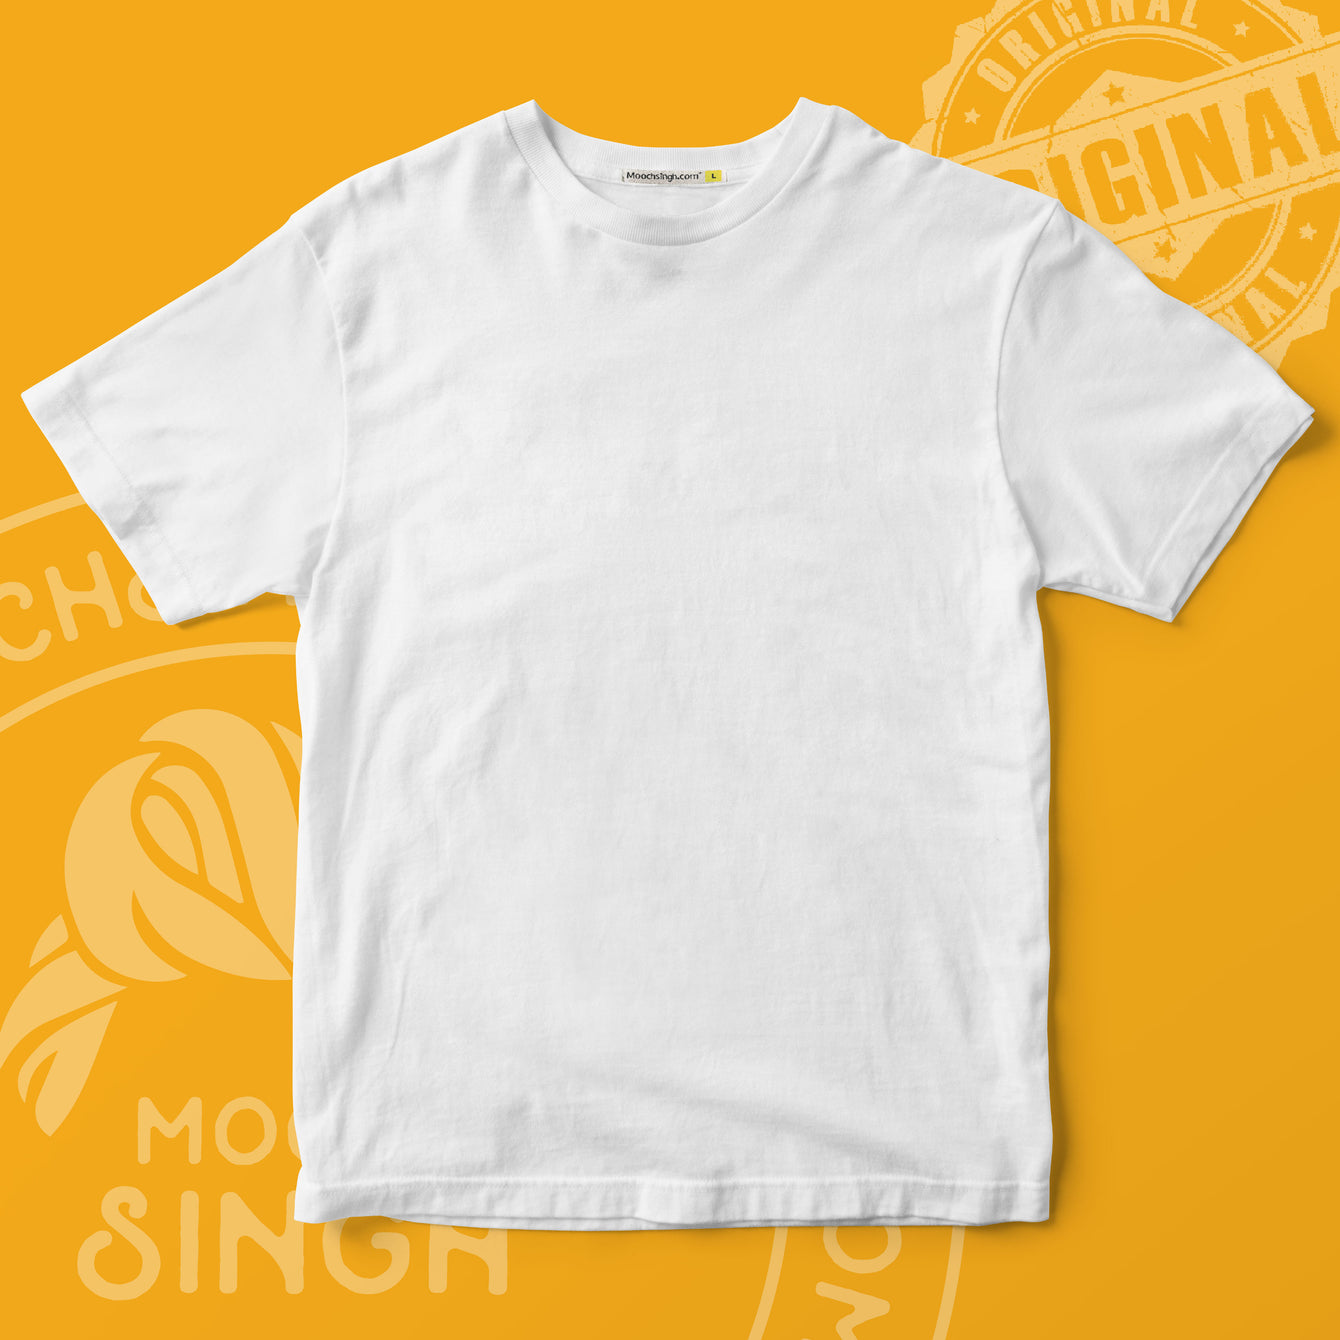 WHITE SOLID ROUND NECK T-SHIRT BY HOUSE OF MOOCHSINGH.COM